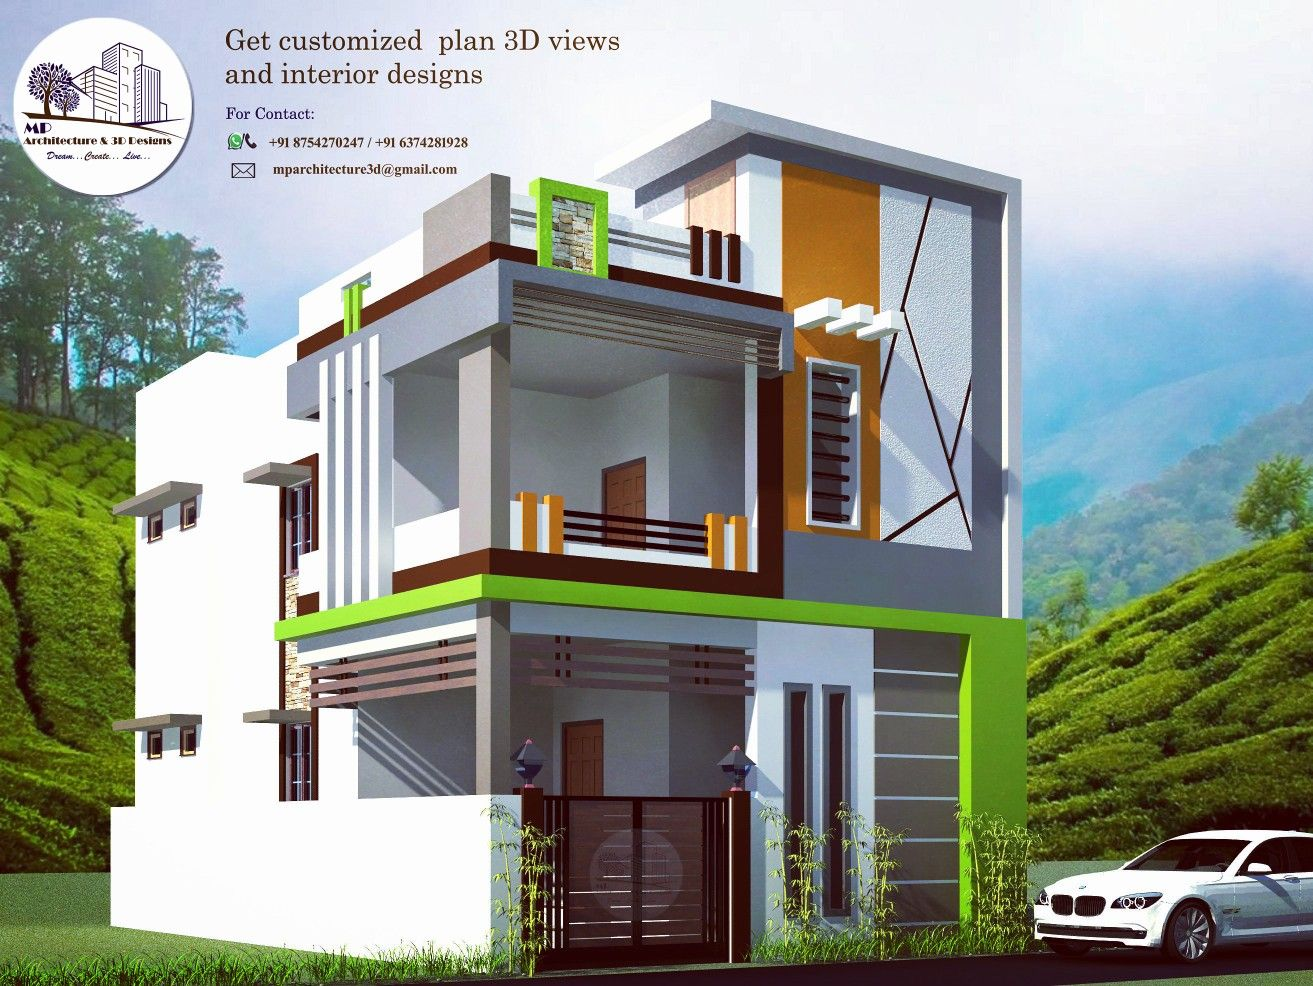 We Design Your Home In An Exceptional Way And Put Creativity